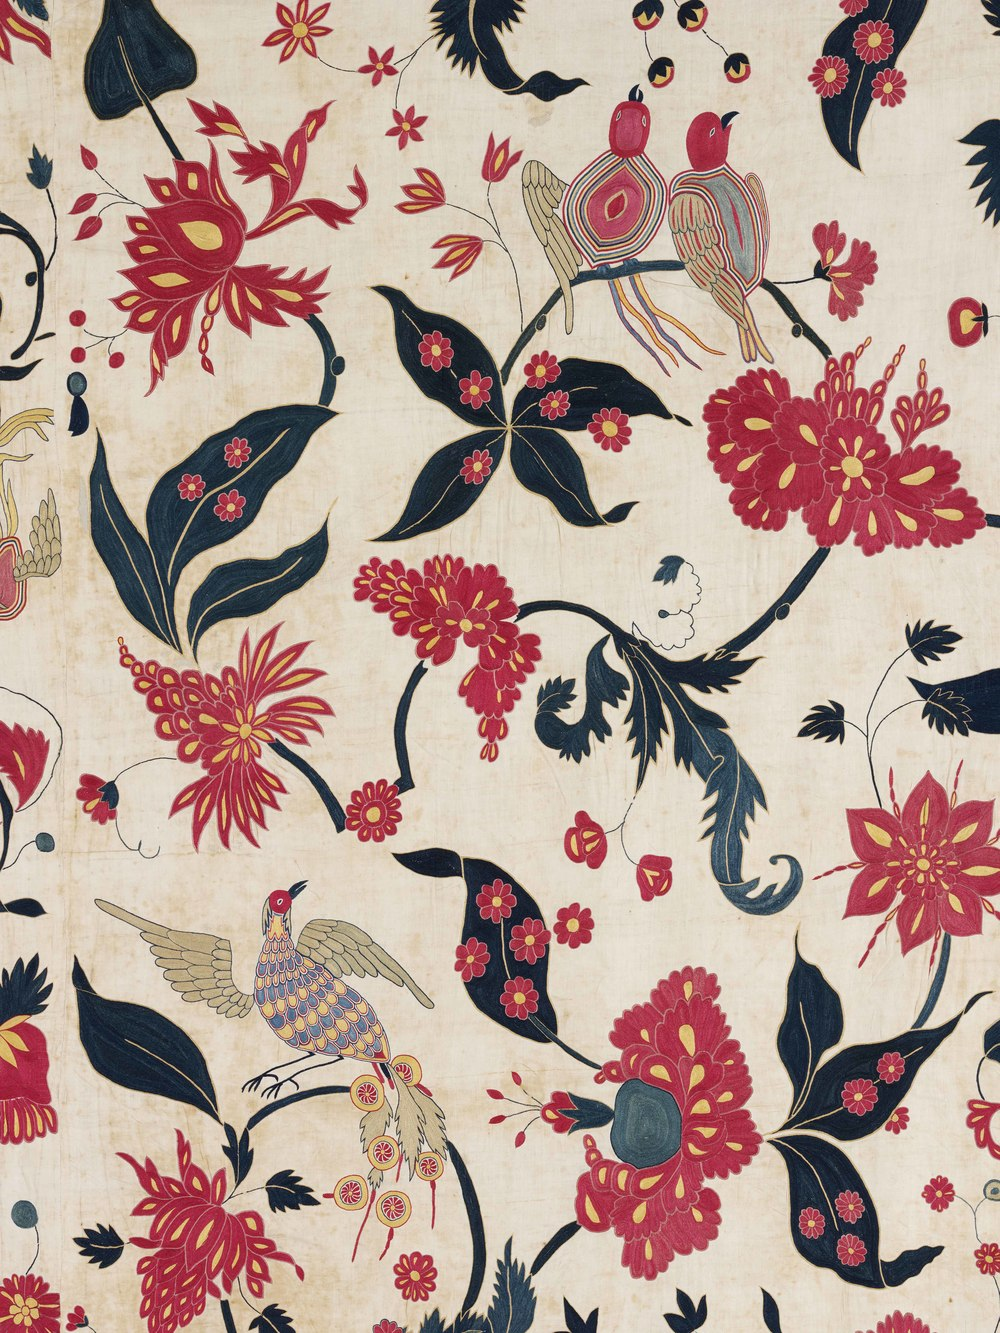 Wall hanging (detail), cotton appliqué, Gujarat for the Western market, ca. 1700, Victoria and Albert Museum, London